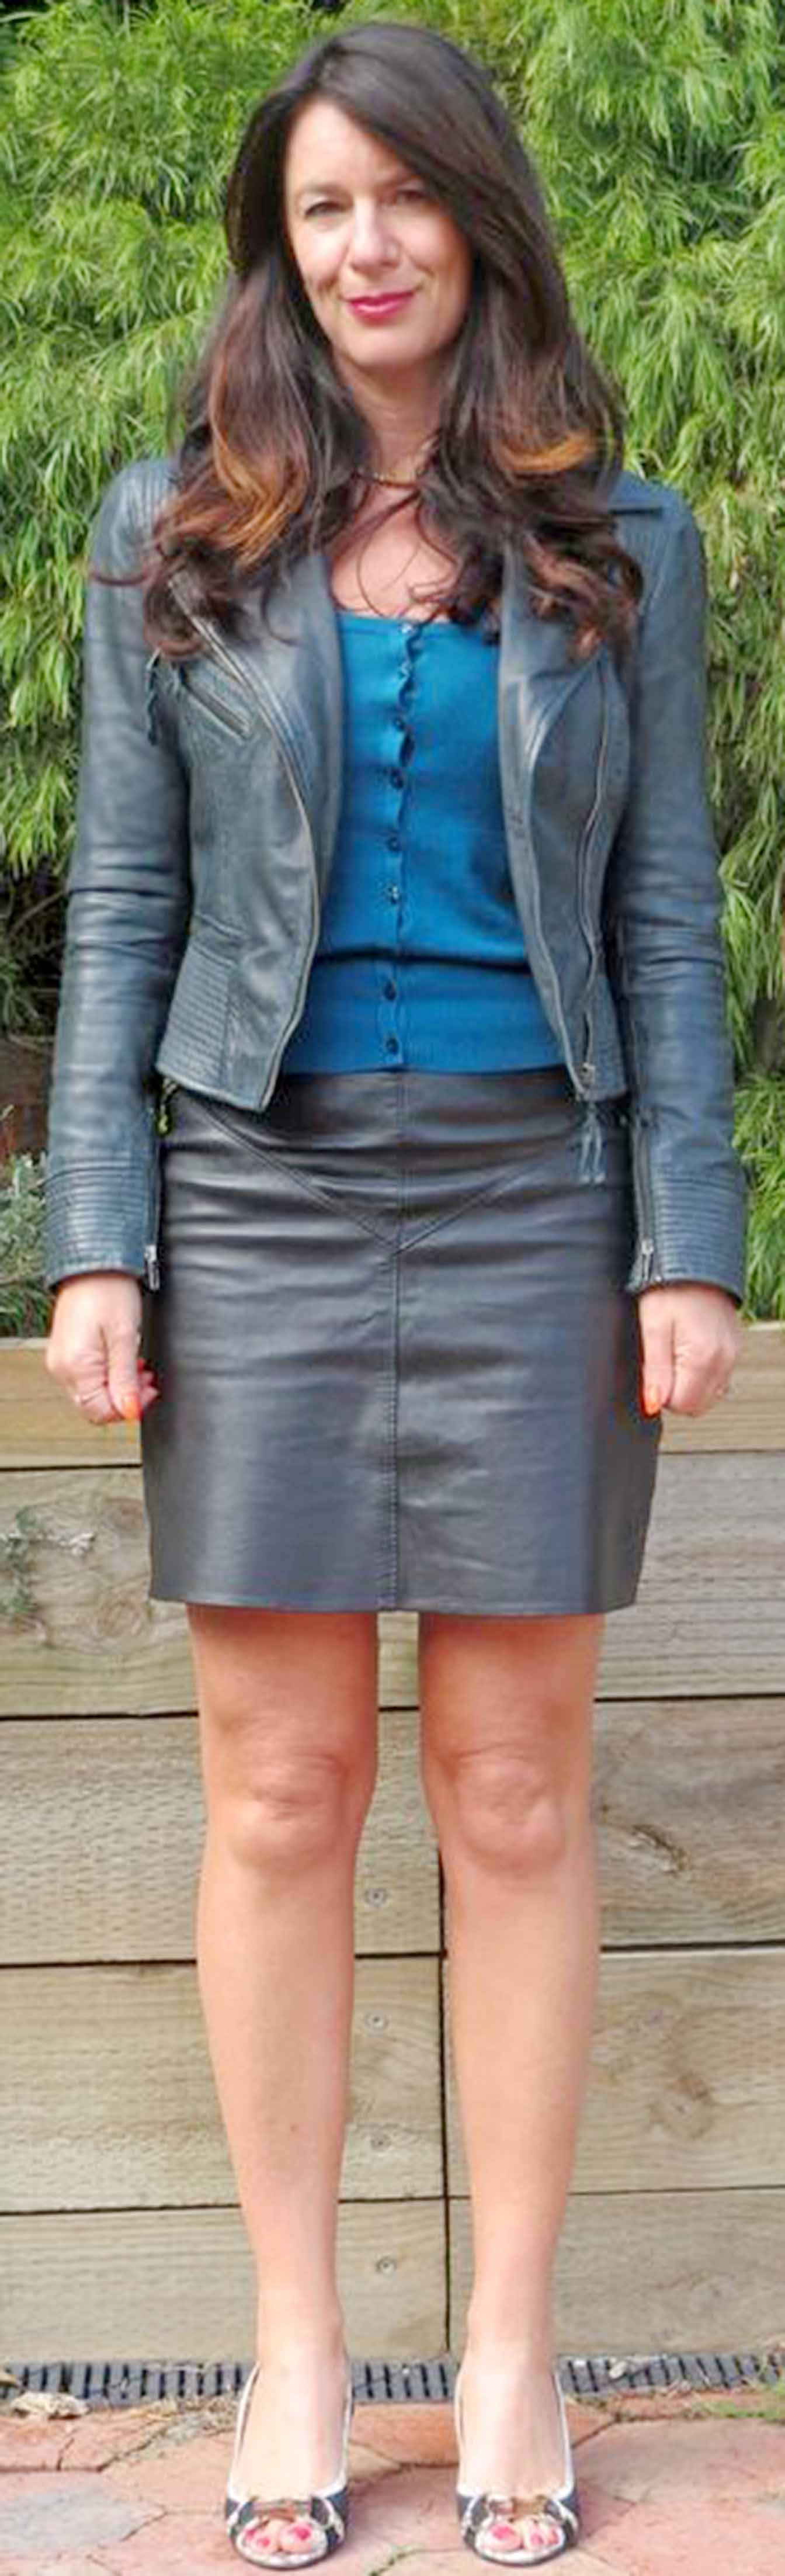 Mature Lady in Leatherskirt